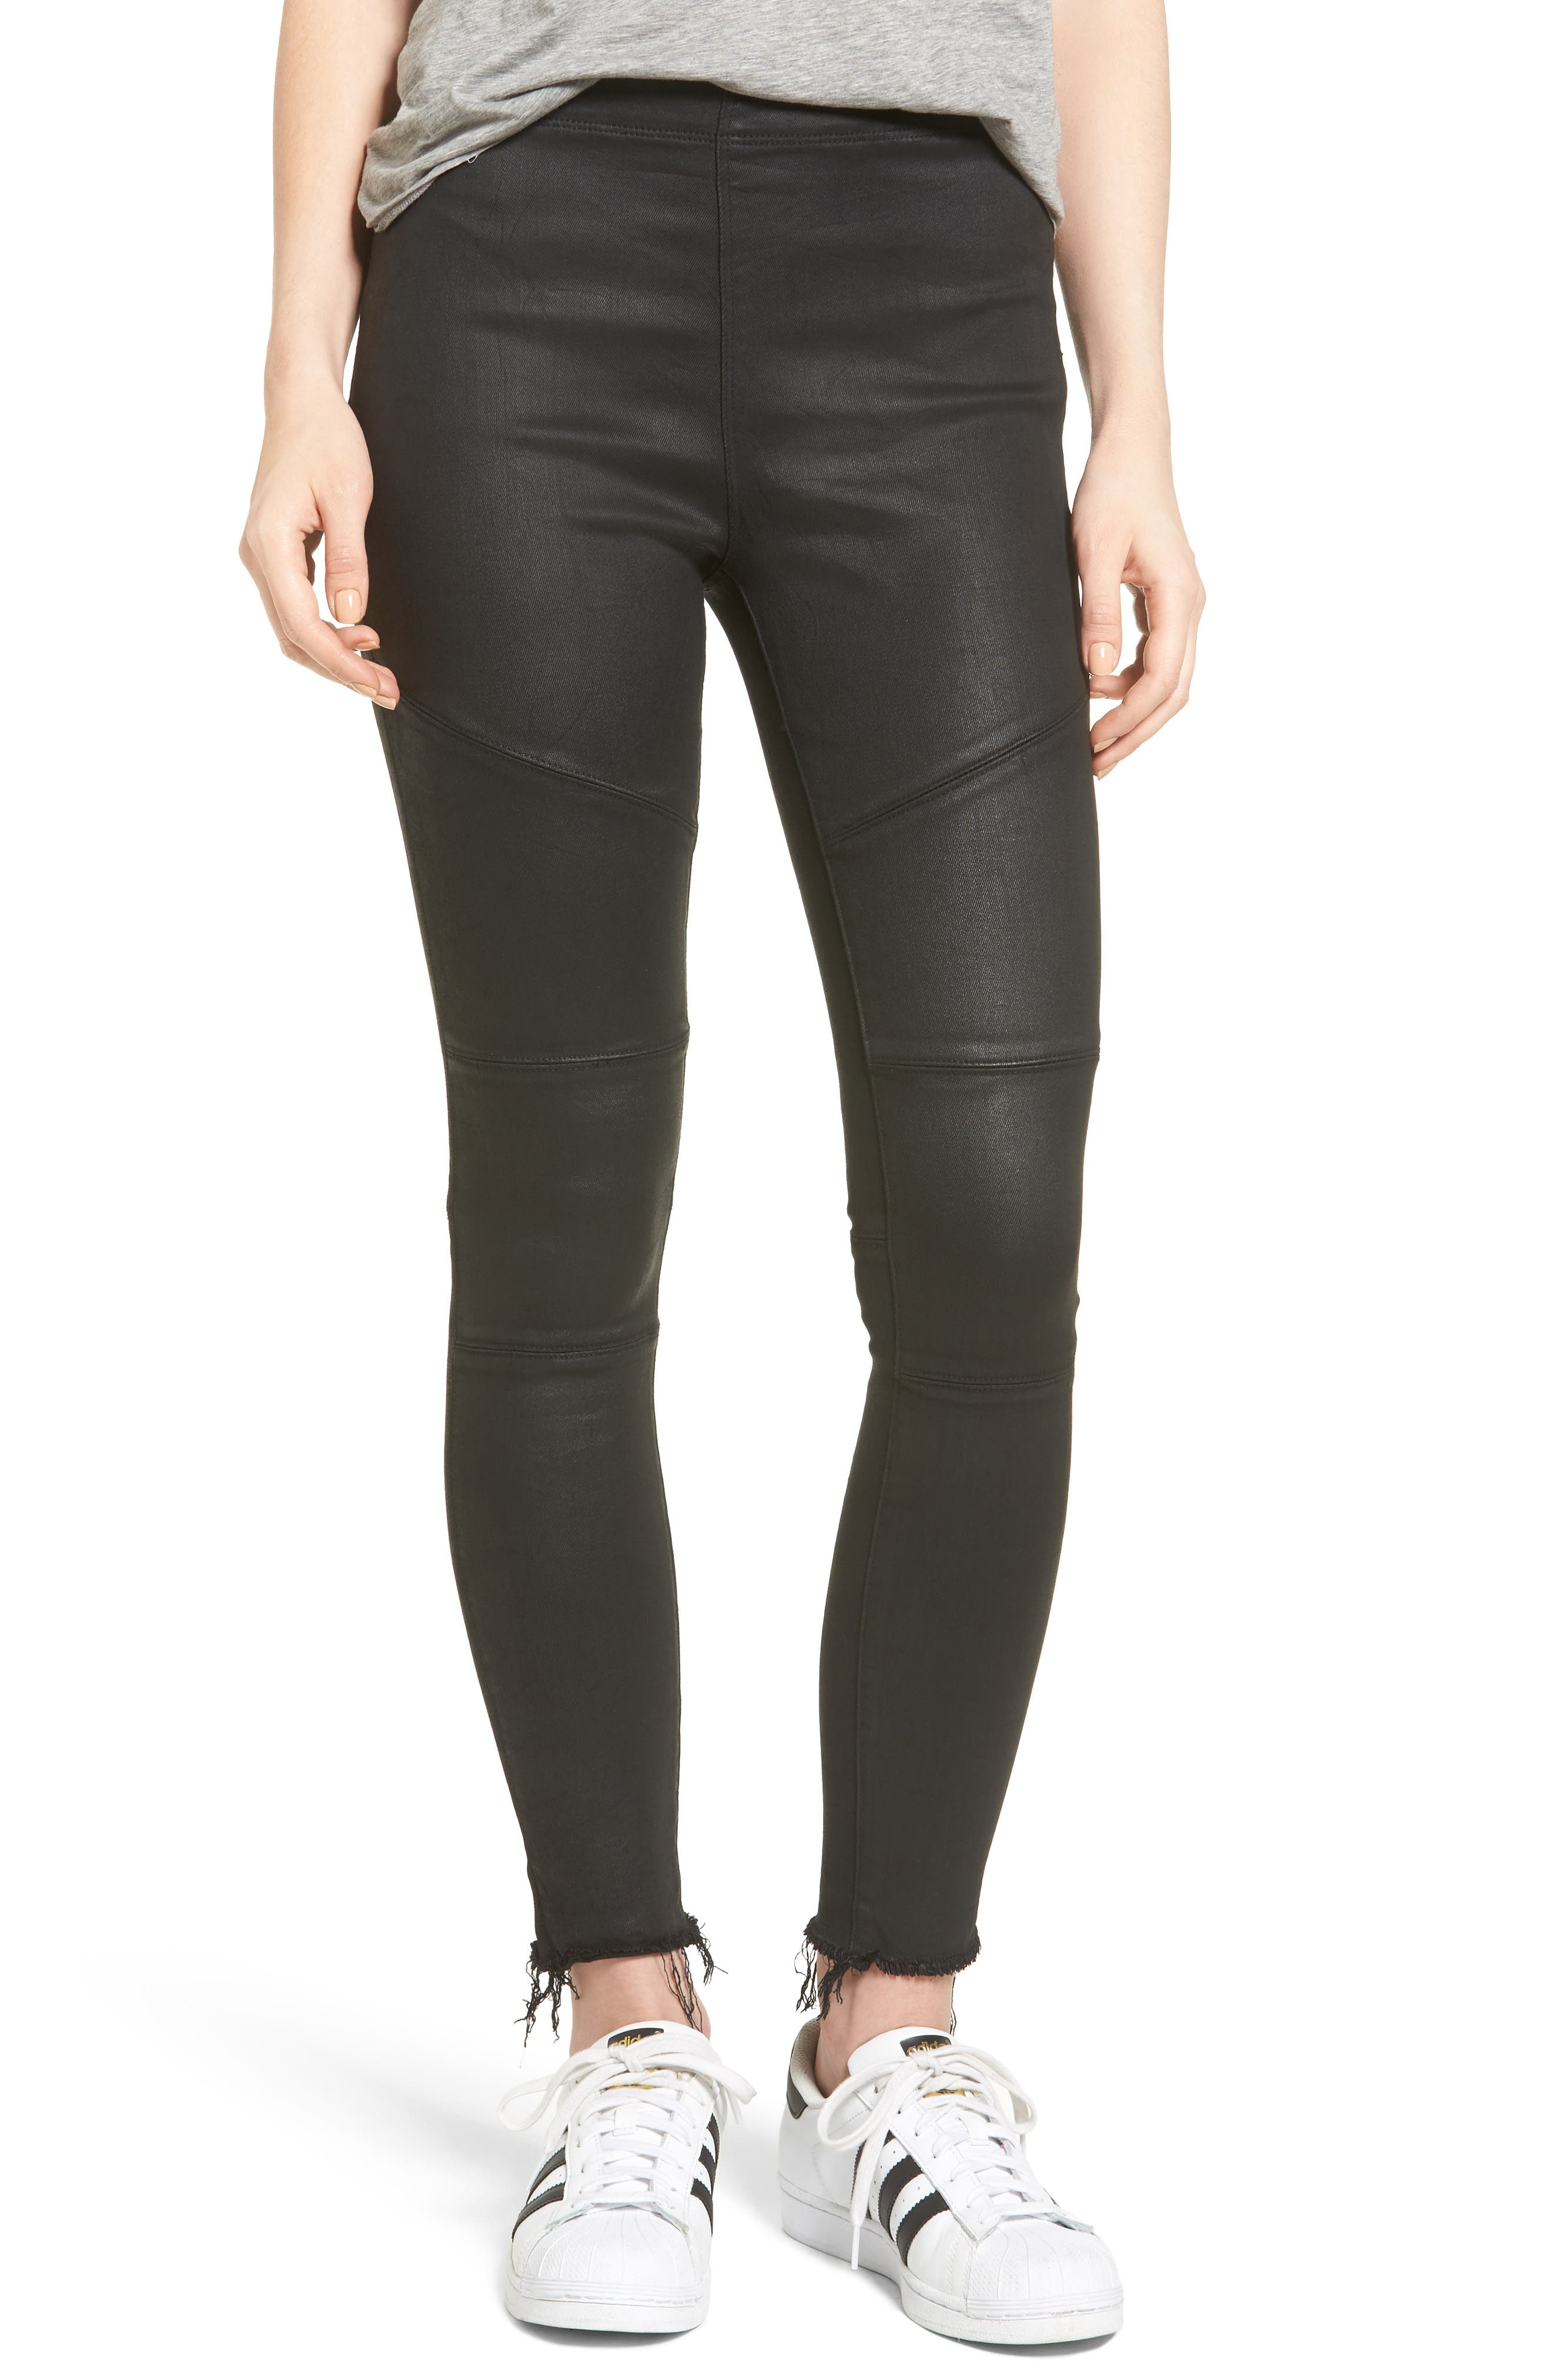 Haven Coated Denim Leggings,                             Main thumbnail 1, color,                             Asphalt